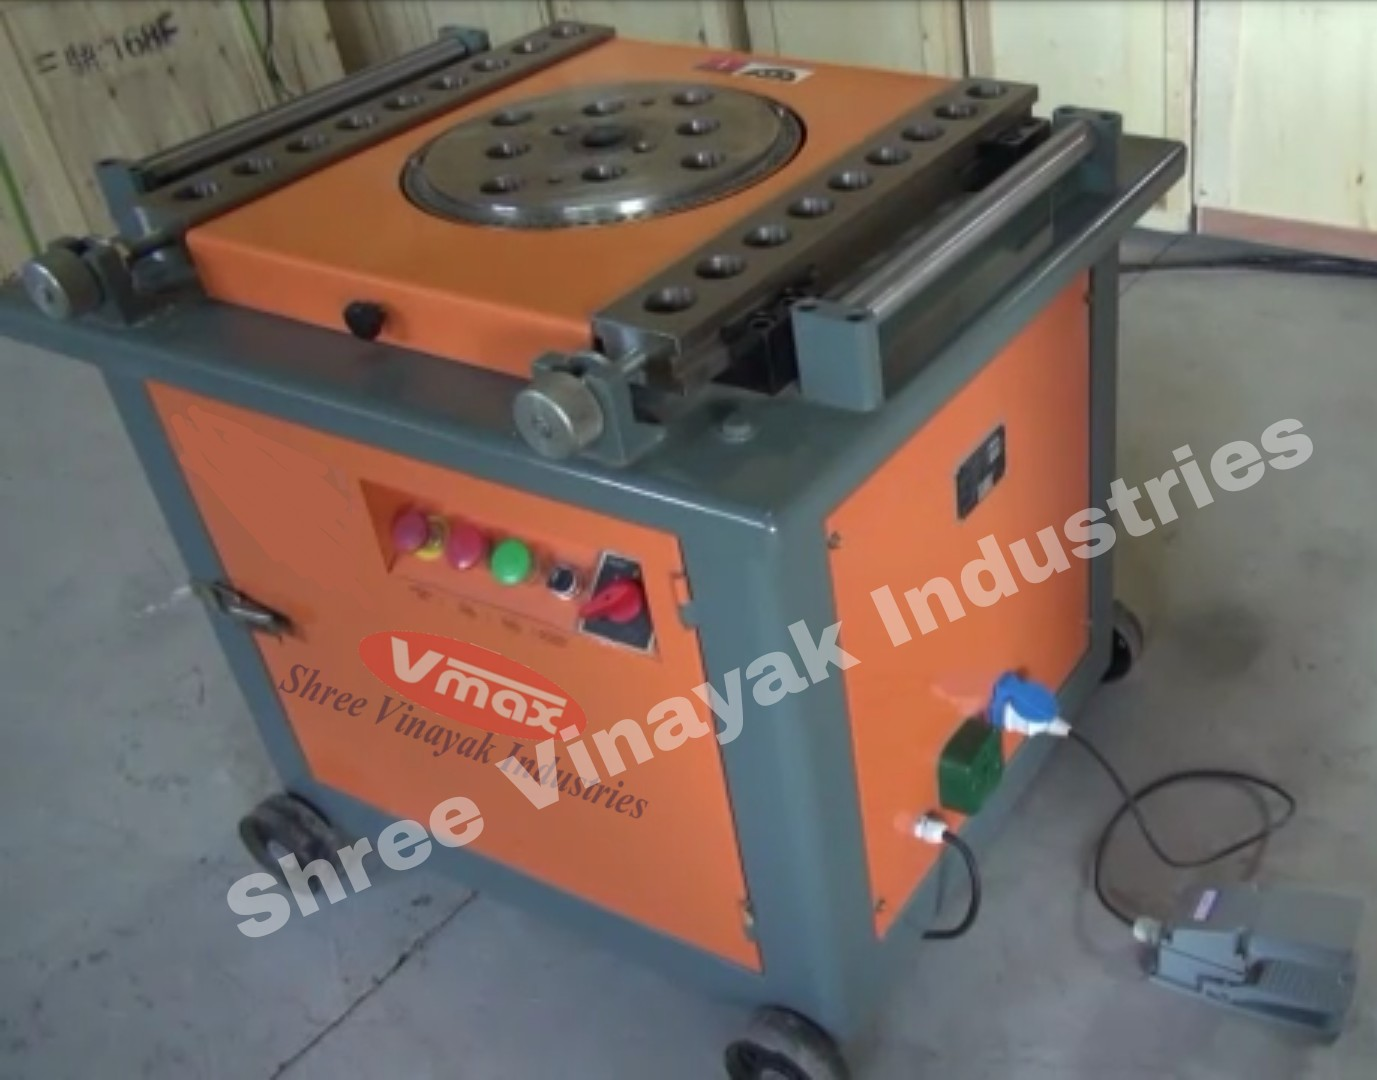 Shree Vinayak industries make Bar bending machine.We are manufacturing Bar bending machine, Rebar bender machine, Rebar bending machine, Bar bender machine , Tmt Bar bending, Tmt Bar bender.Bar bender, Rebar bending machine, Tmt Bar bender machine is used to bend Tmt steel for constuction , Bridges , Building etc. We sell that Bar Bending machine, bar bender machine, Rebar bender machine  in all over India.